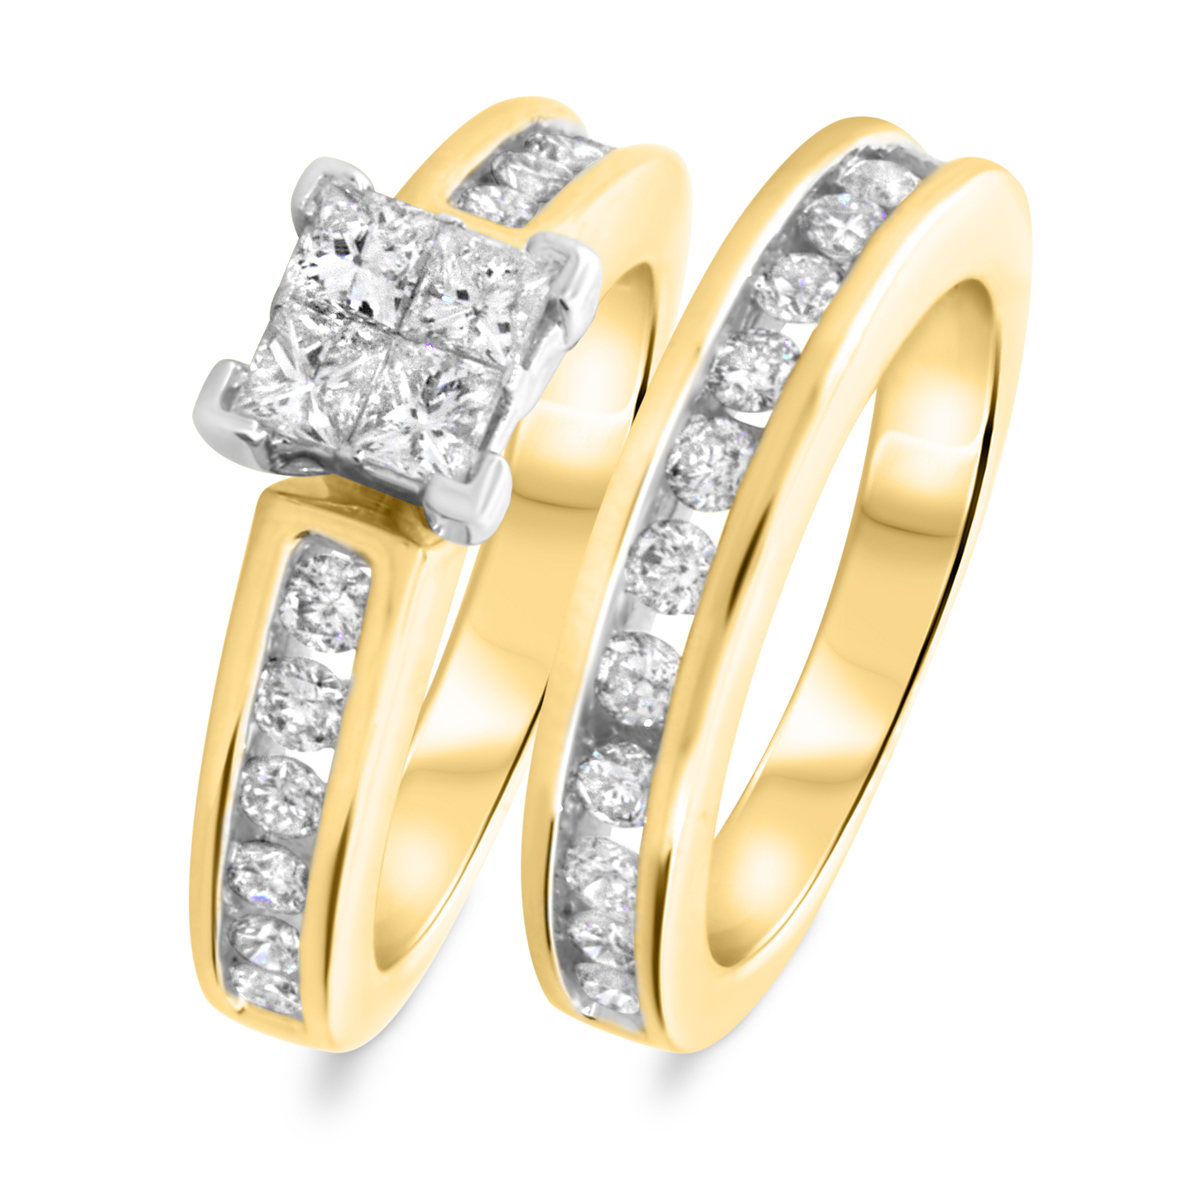 1 1/2 CT. T.W. Princess, Round Cut Diamond Ladies Bridal Wedding Ring Set 14K Yellow Gold